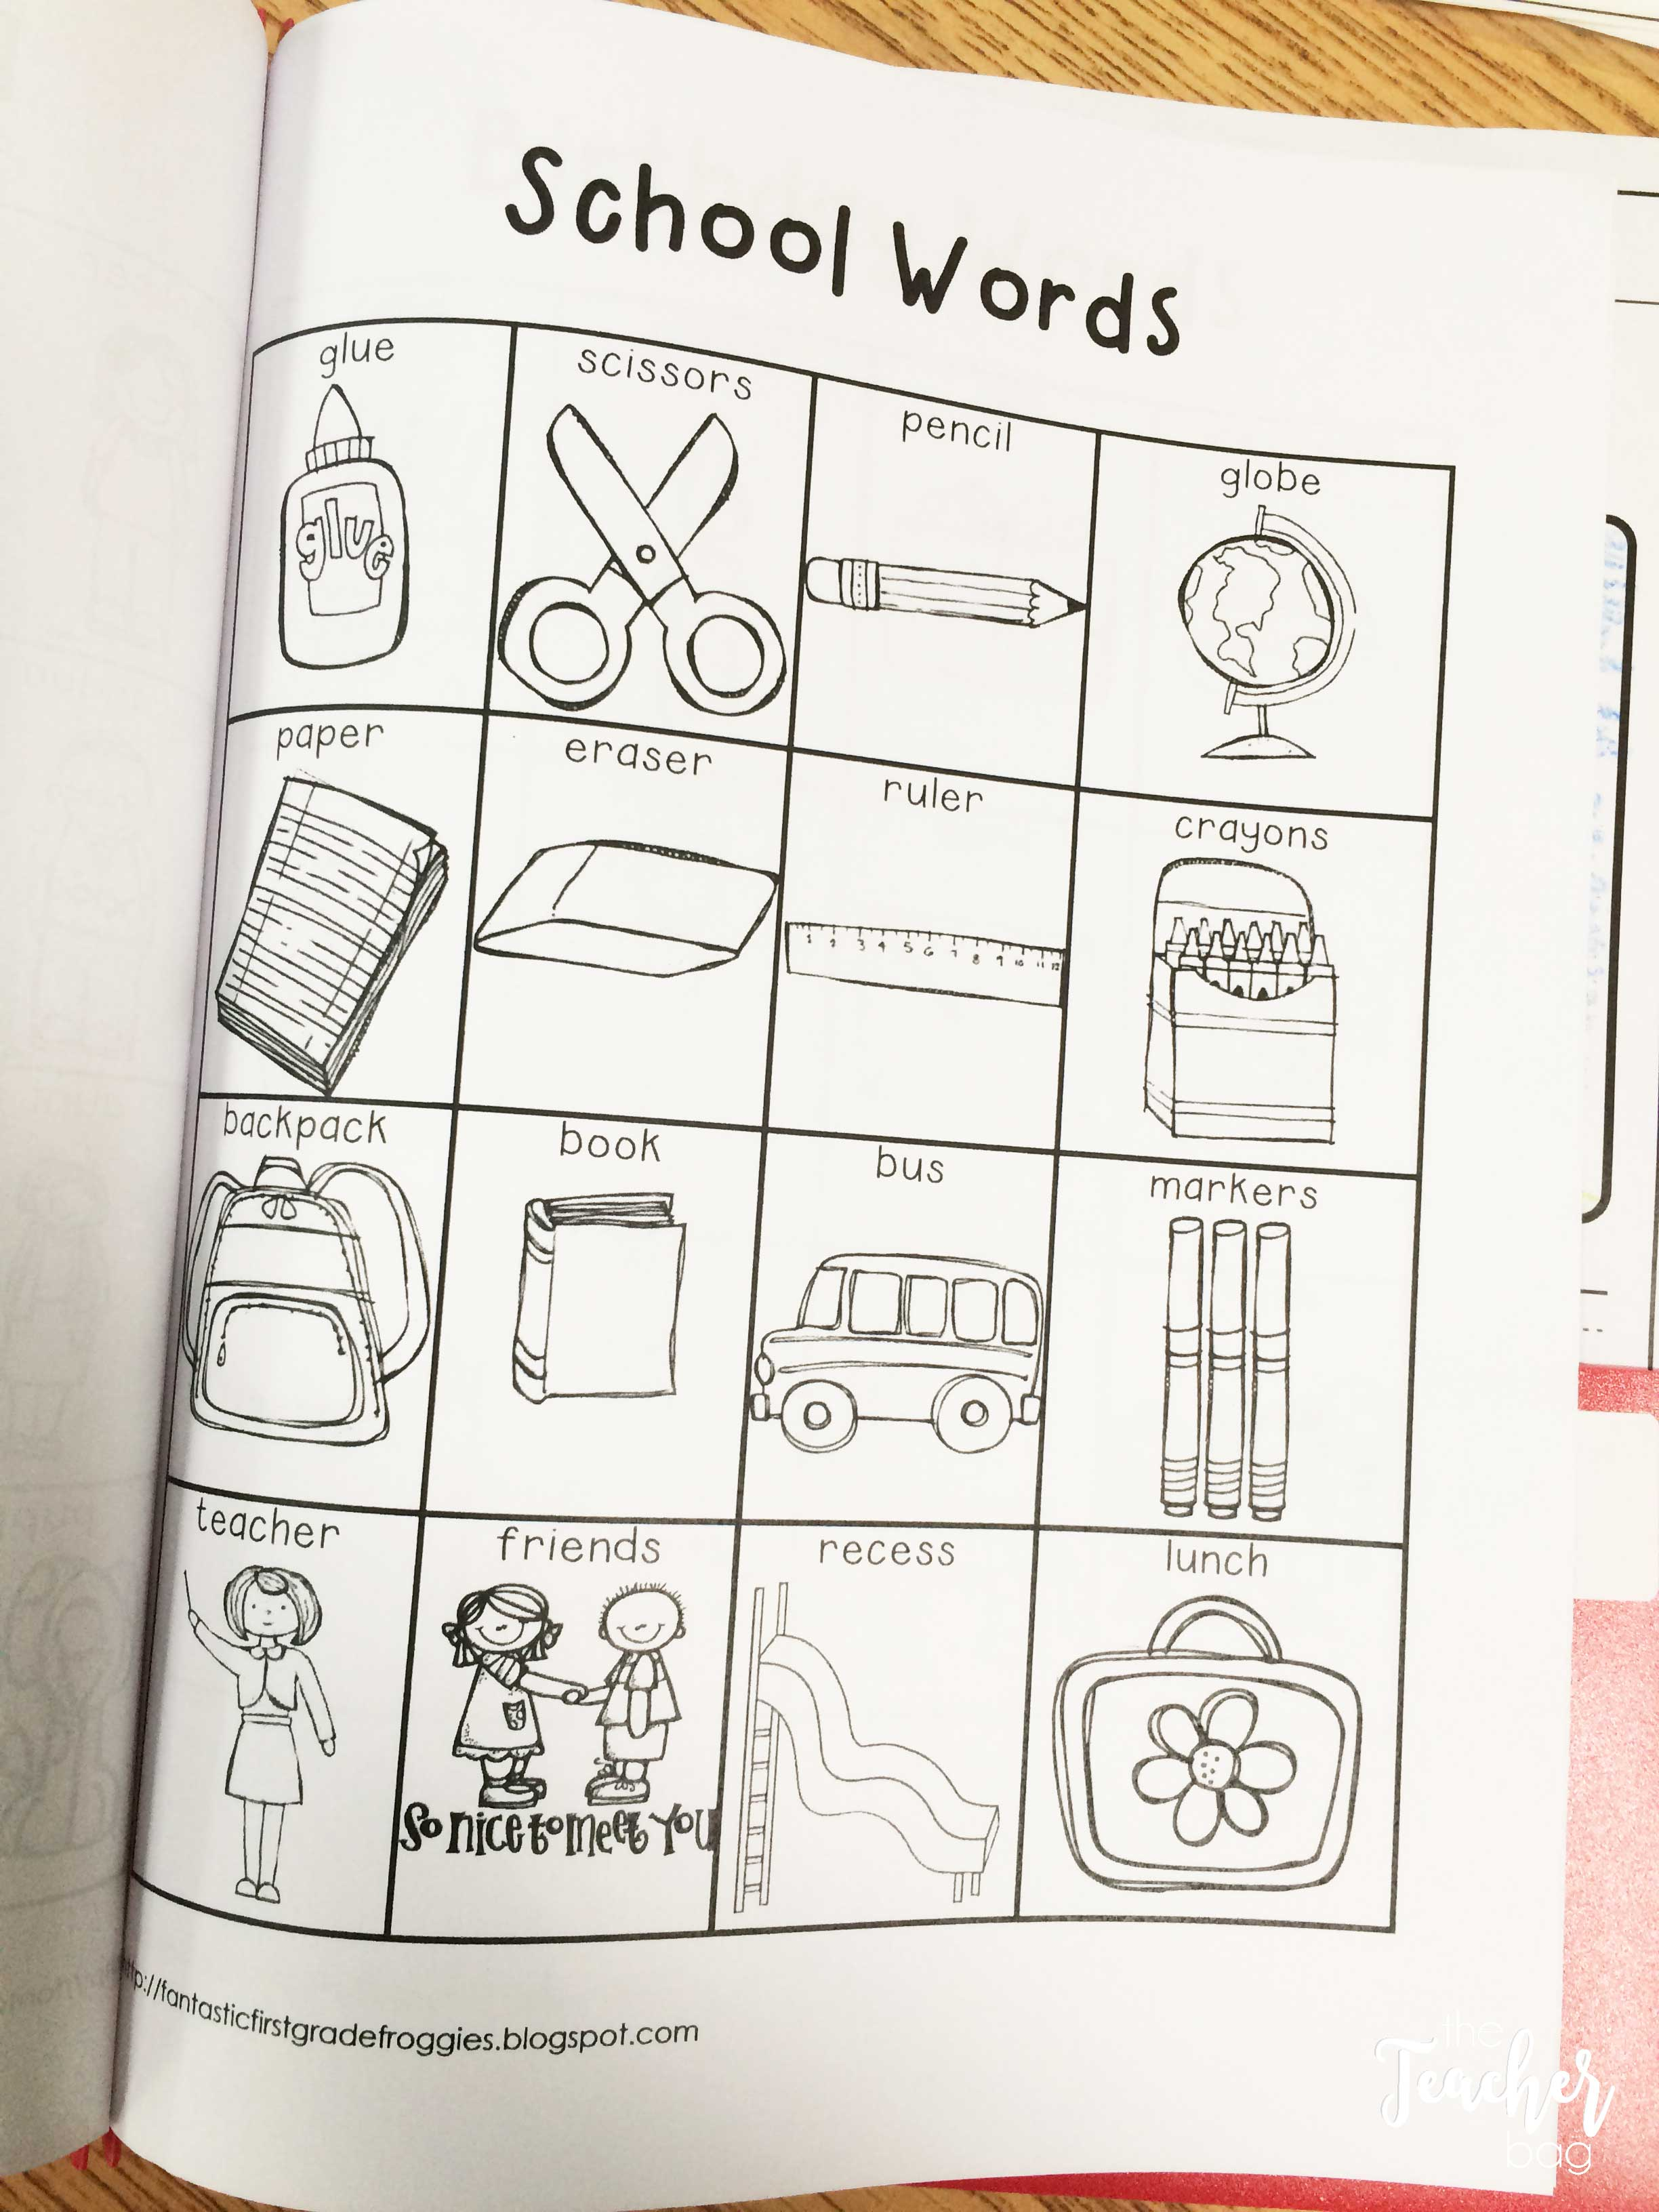 Place word lists in your students writing folders to help with common words and inspiration.